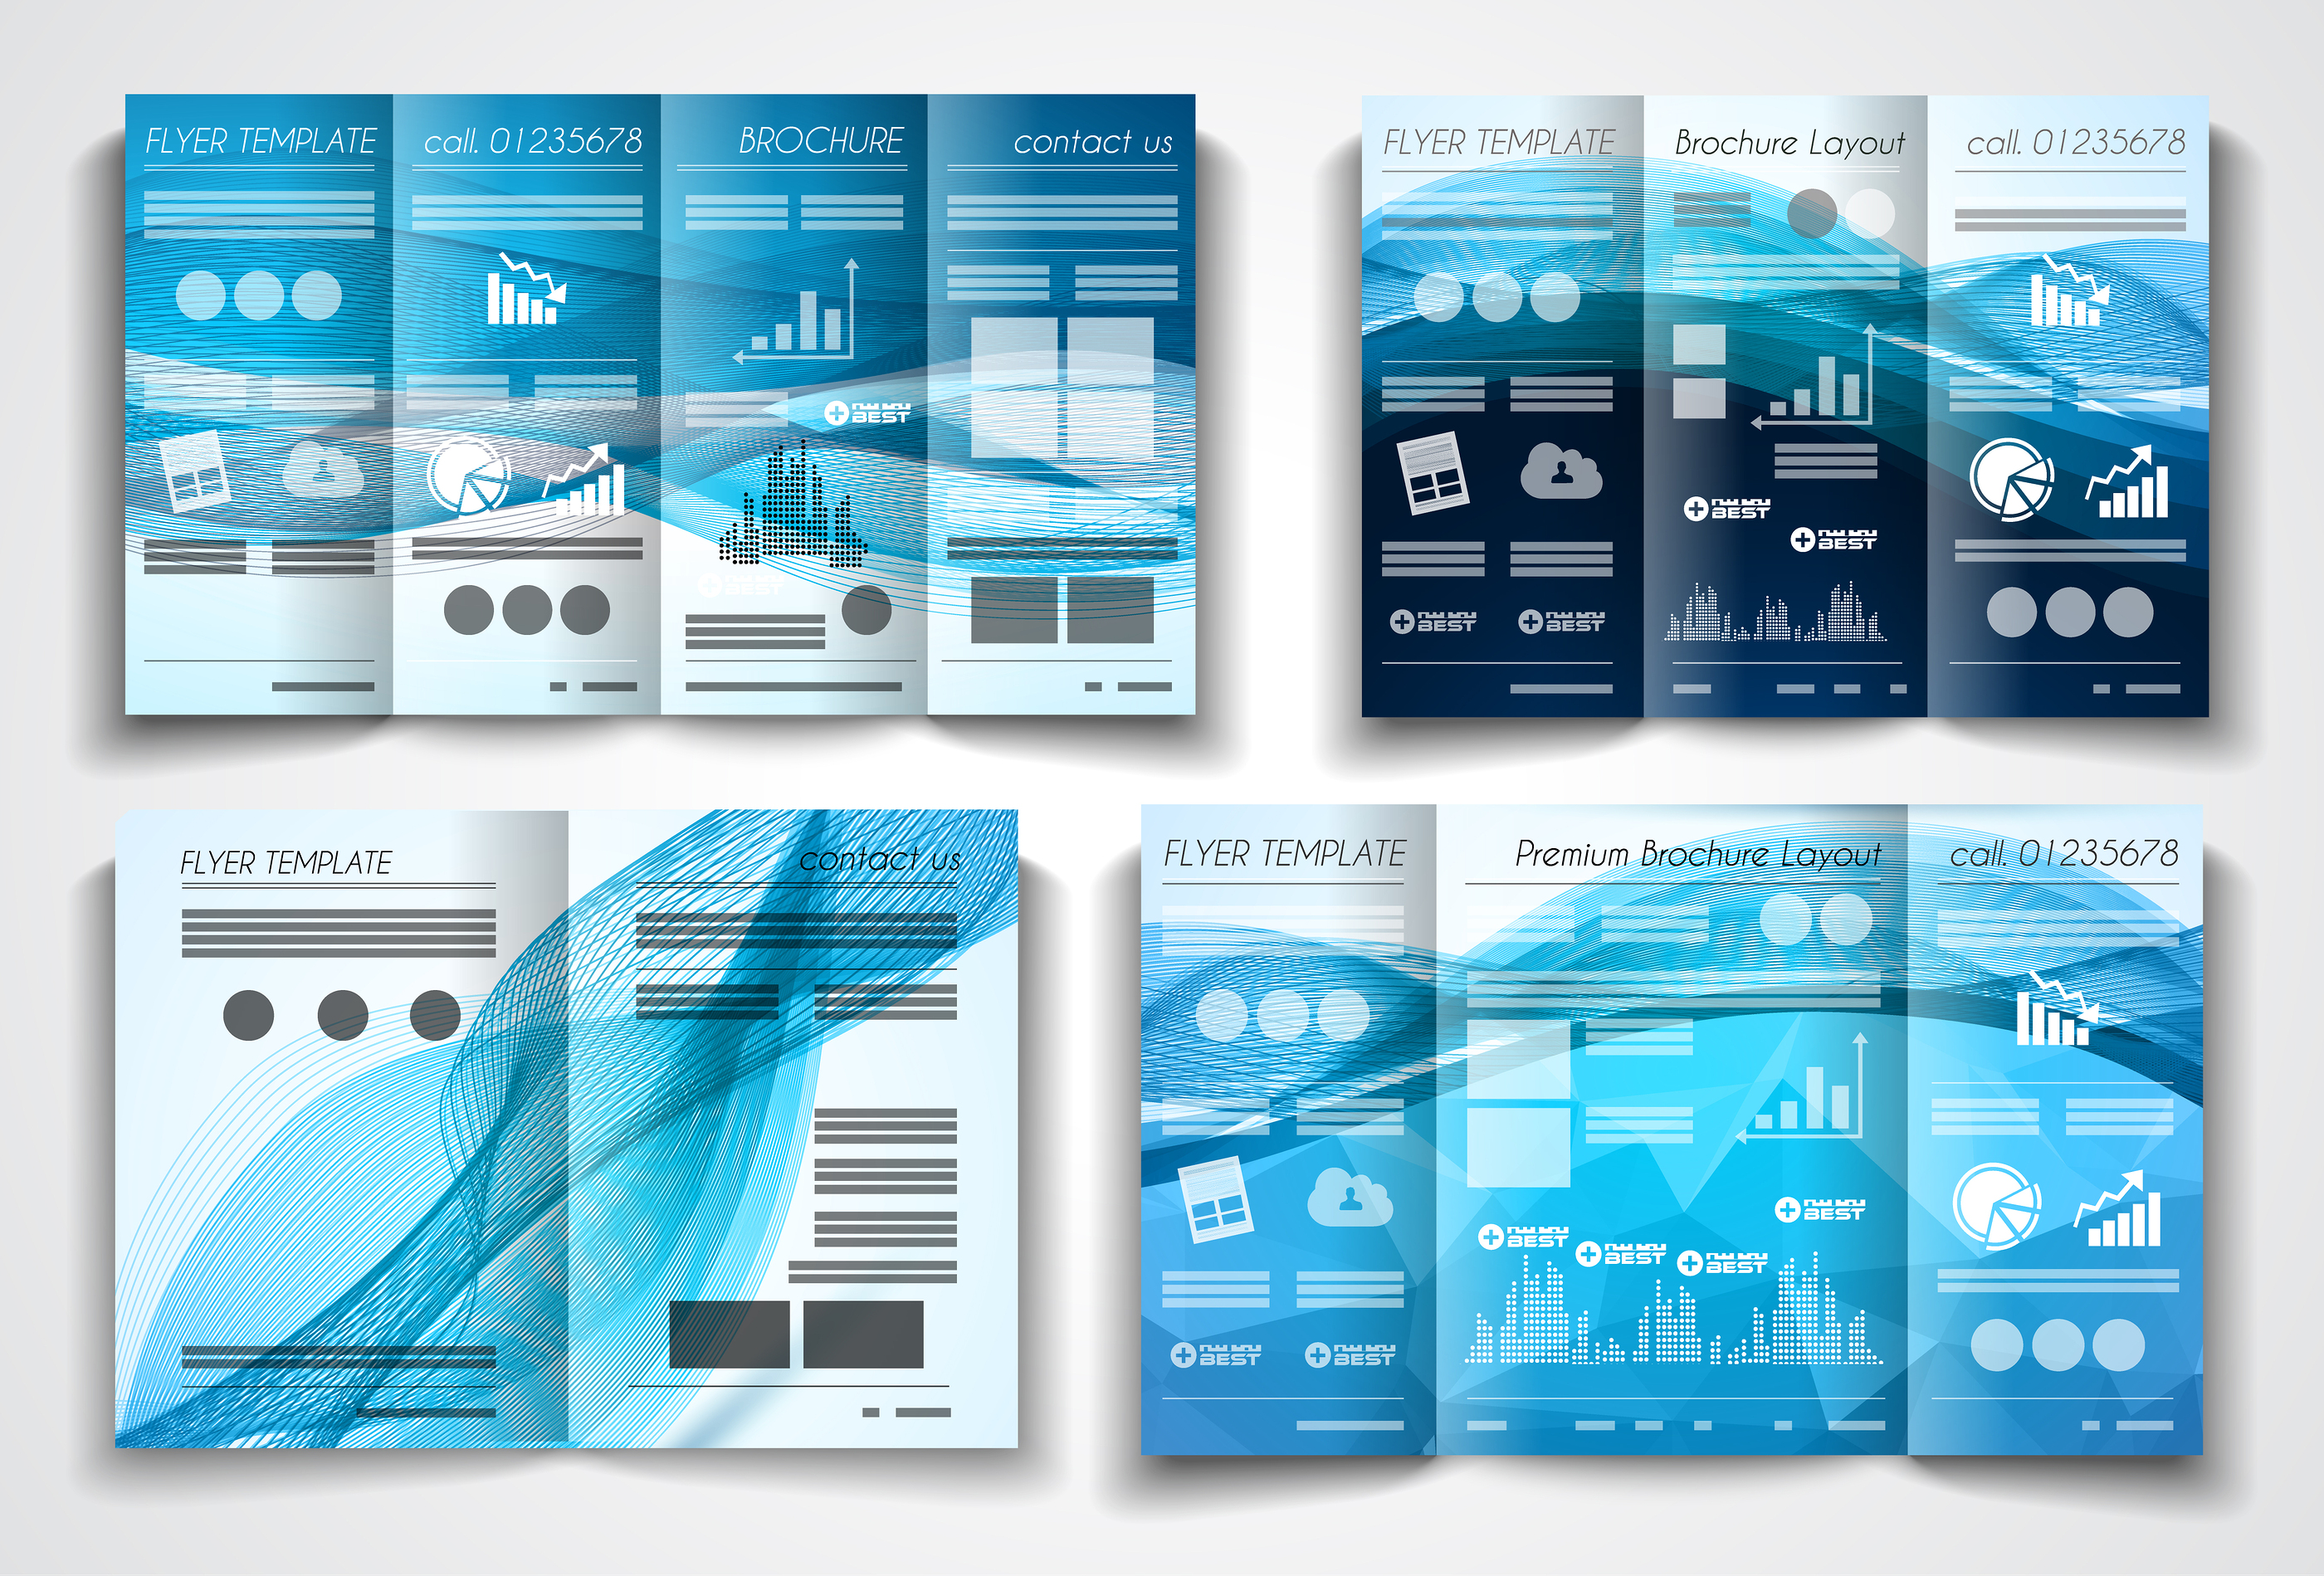 Vector tri fold brochure template design or flyer layout to use for business applications, magazines